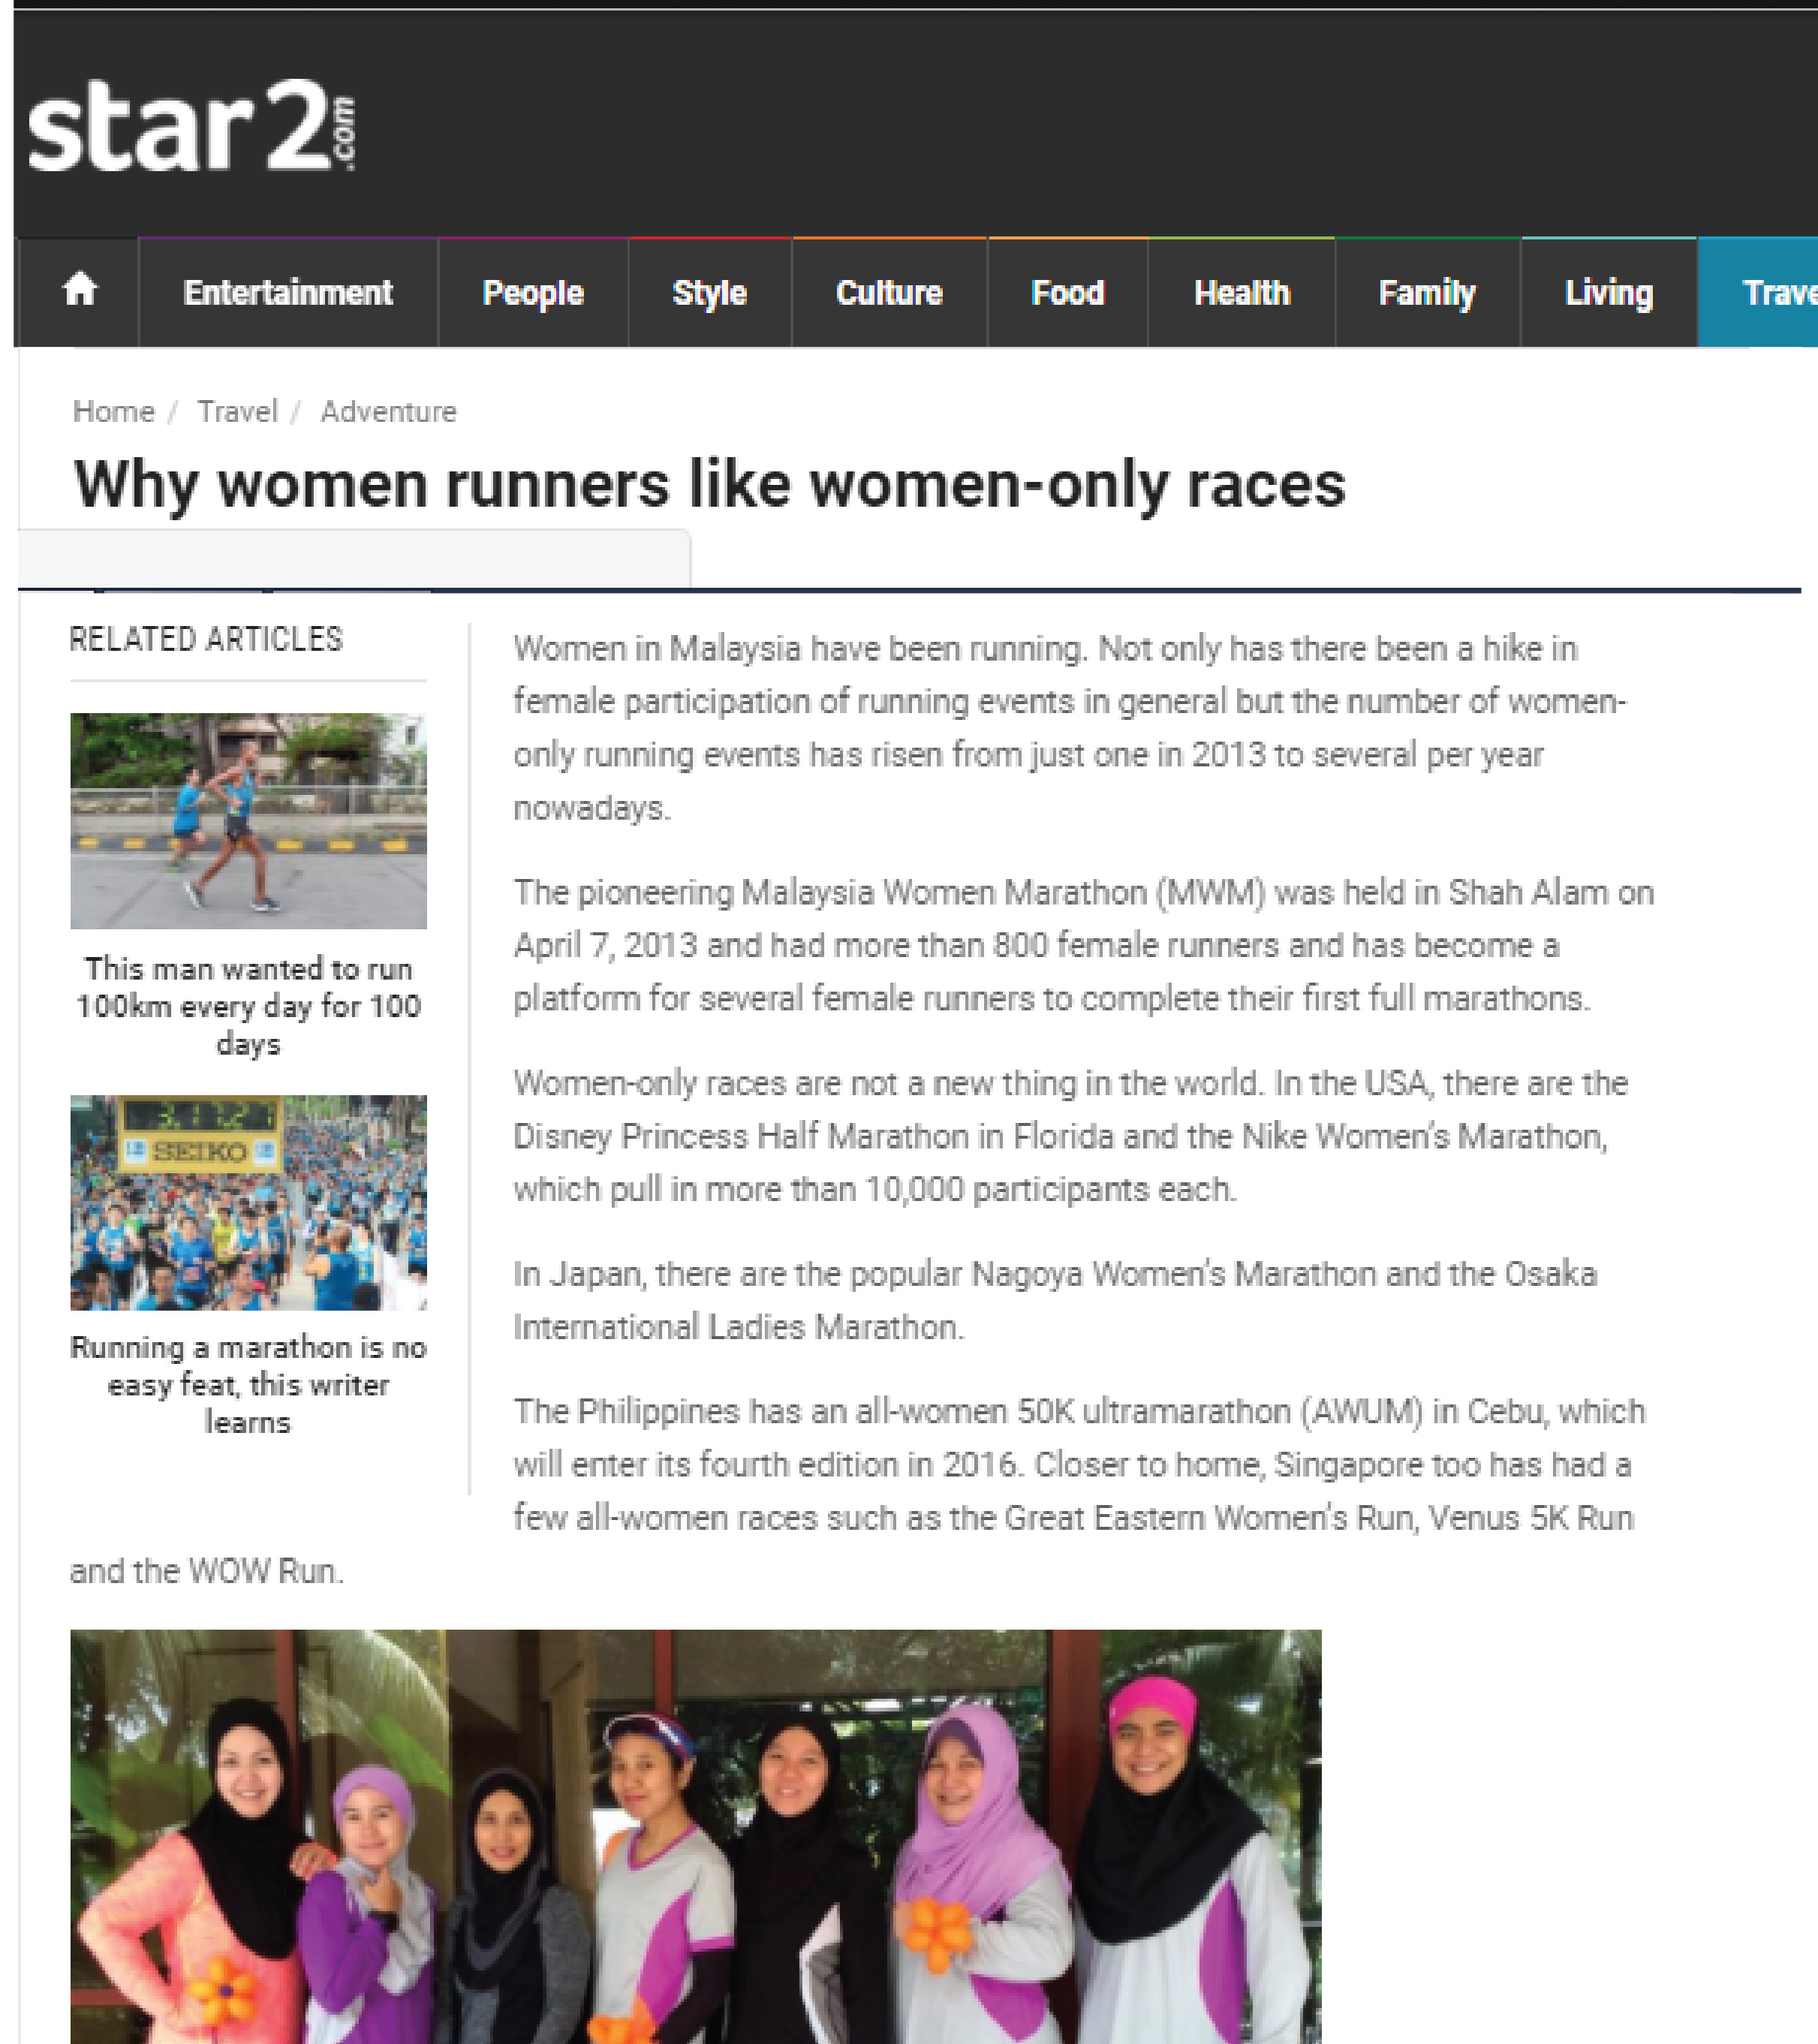 Why women runners like women-only races